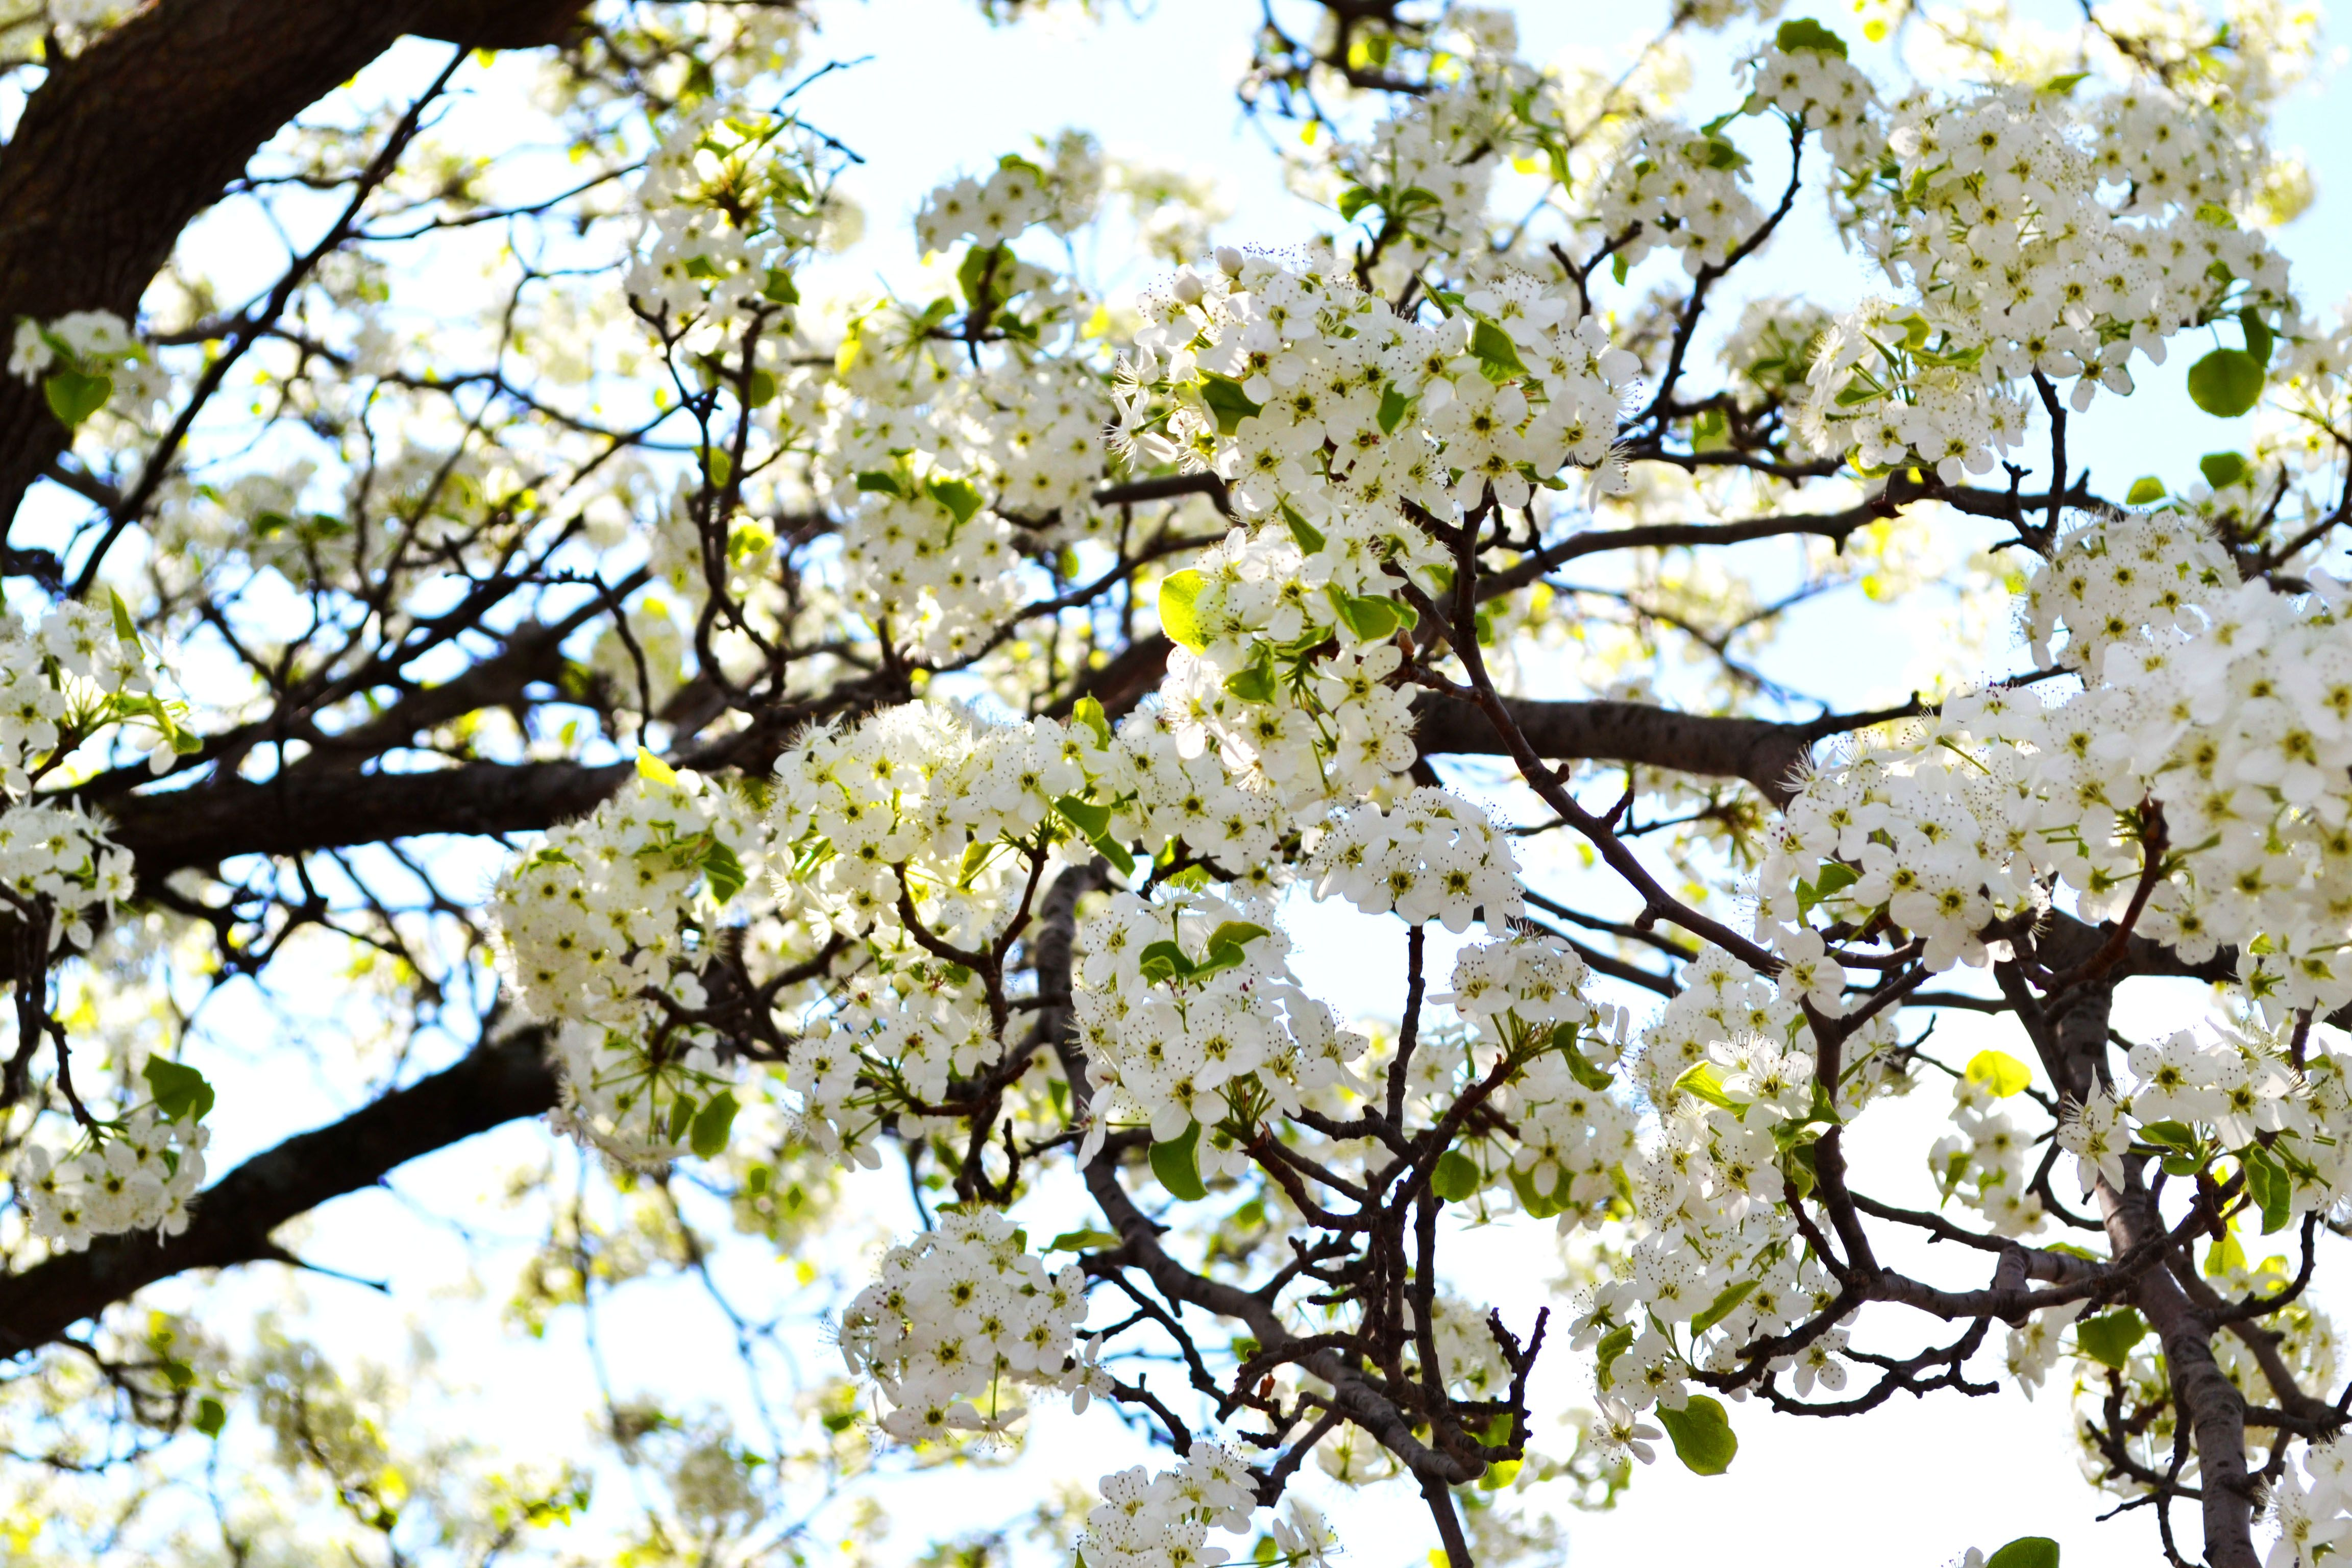 Charming Spring Flowering Tree Preparing Outdoor Area For Summer